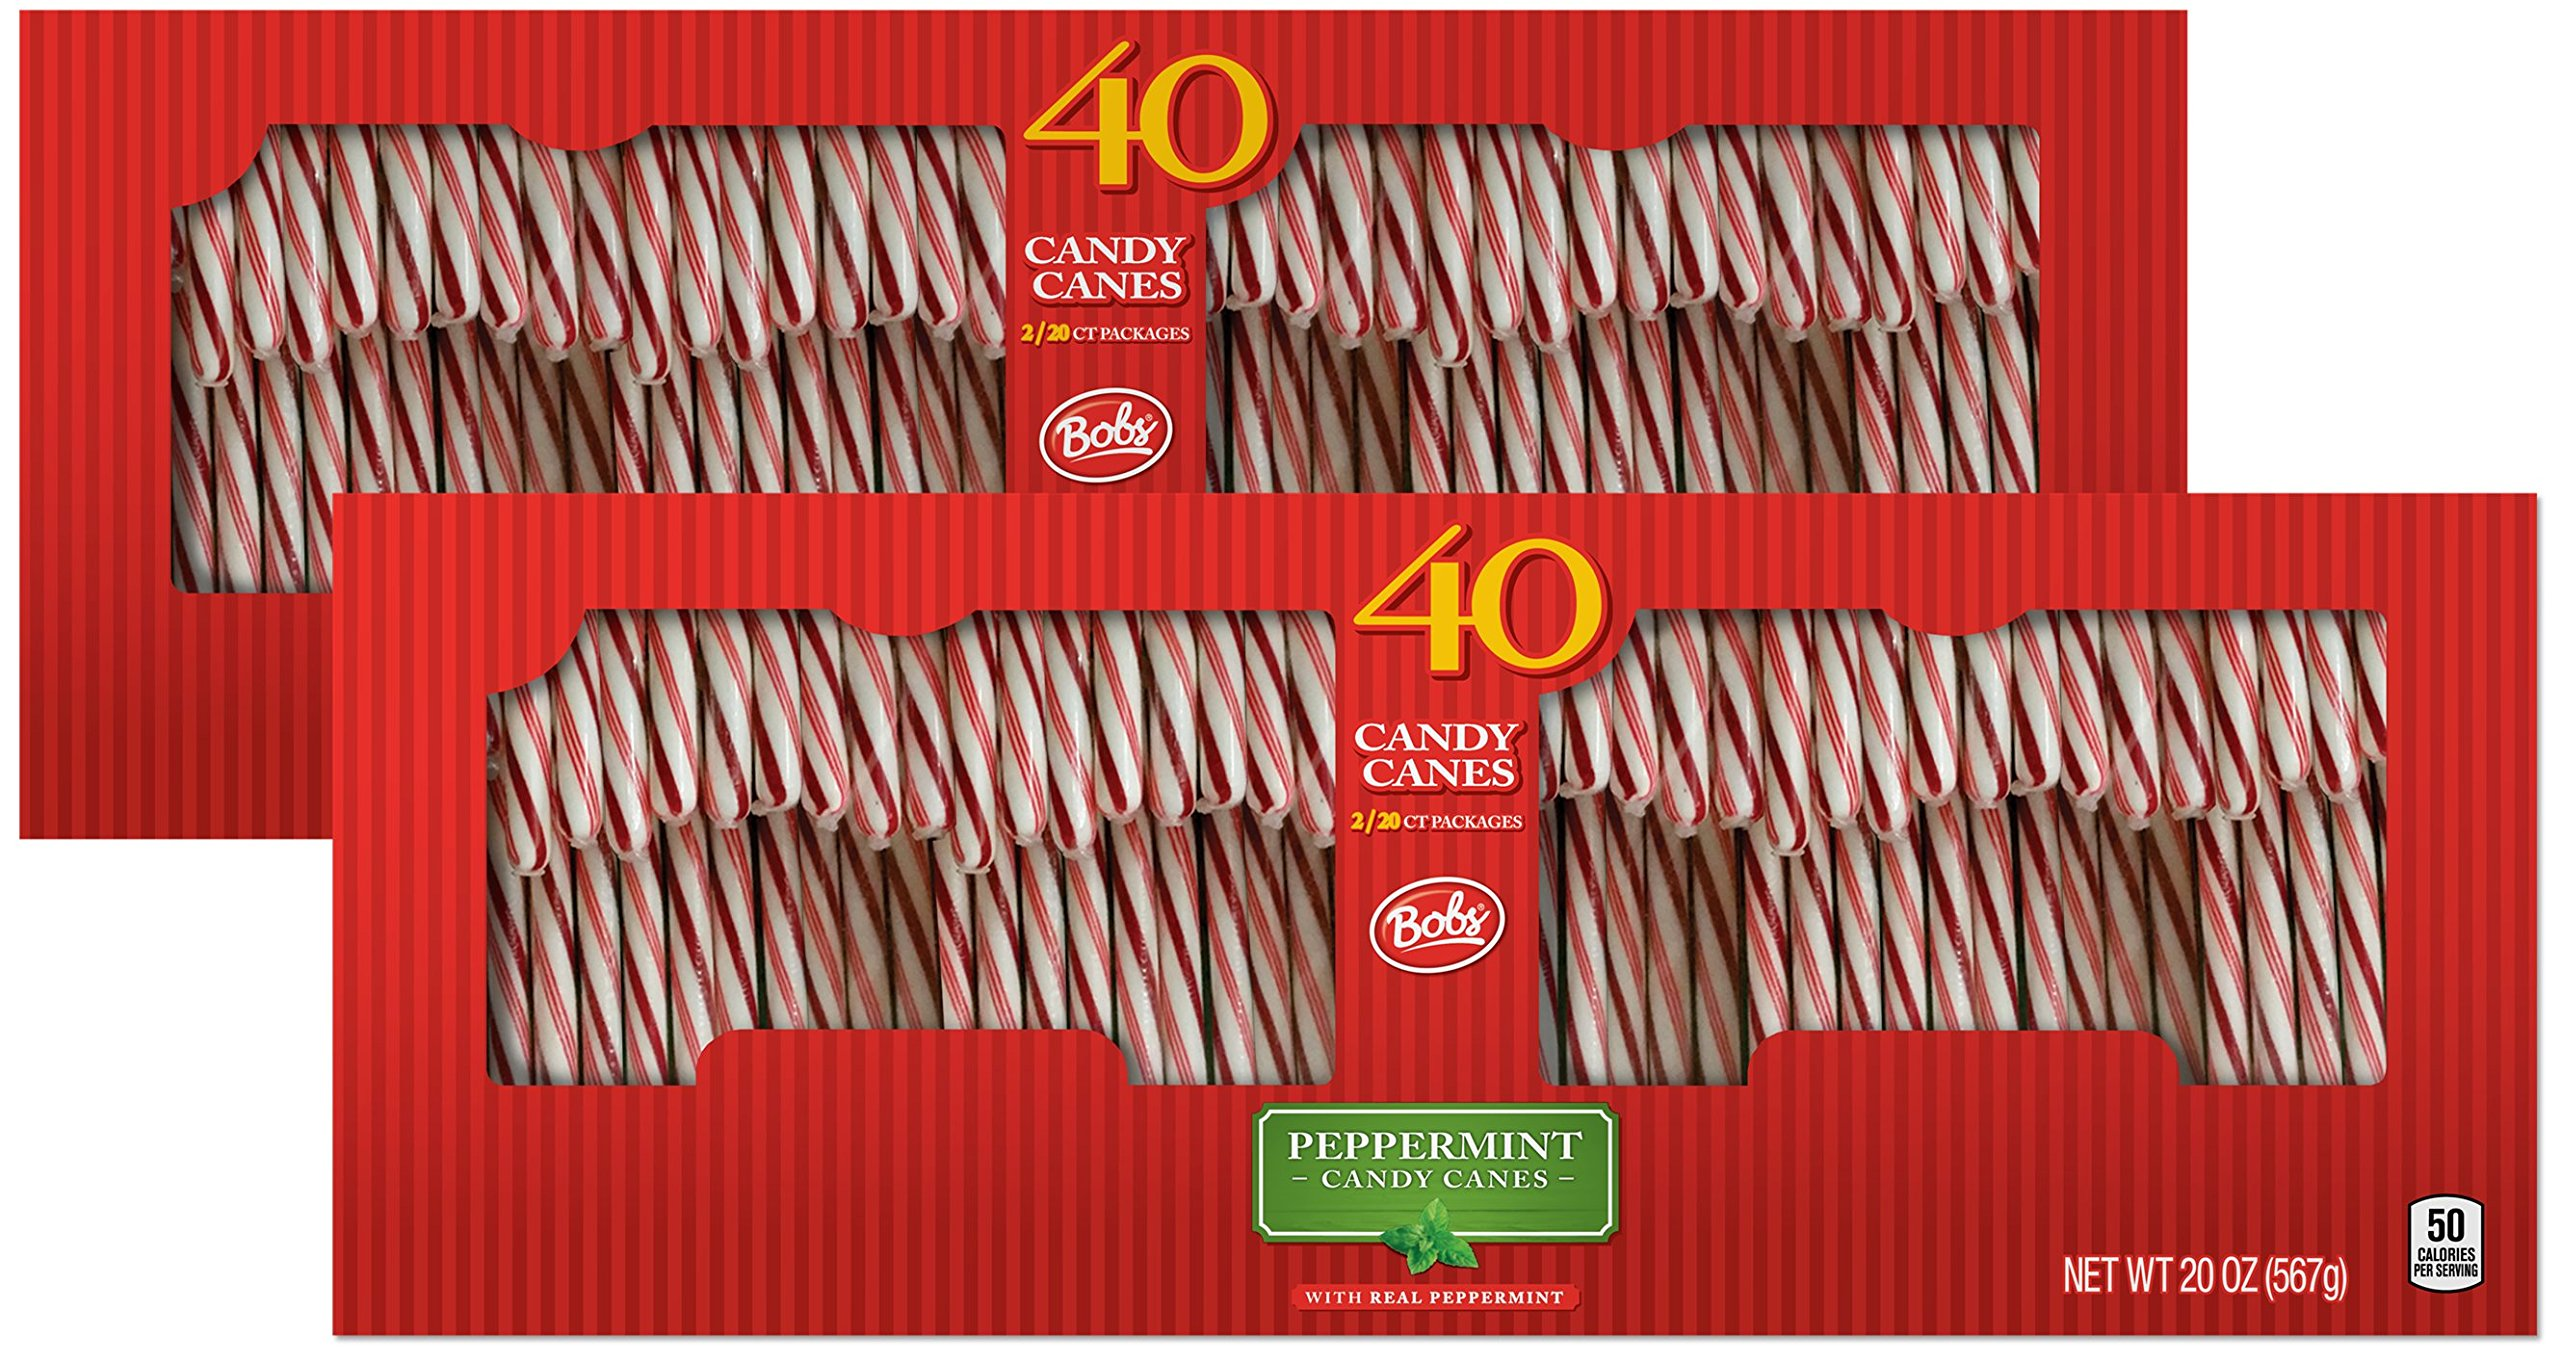 d7b31b0f1b3e Amazon.com   Brach s Bobs Red and White Candy Canes Peppermint